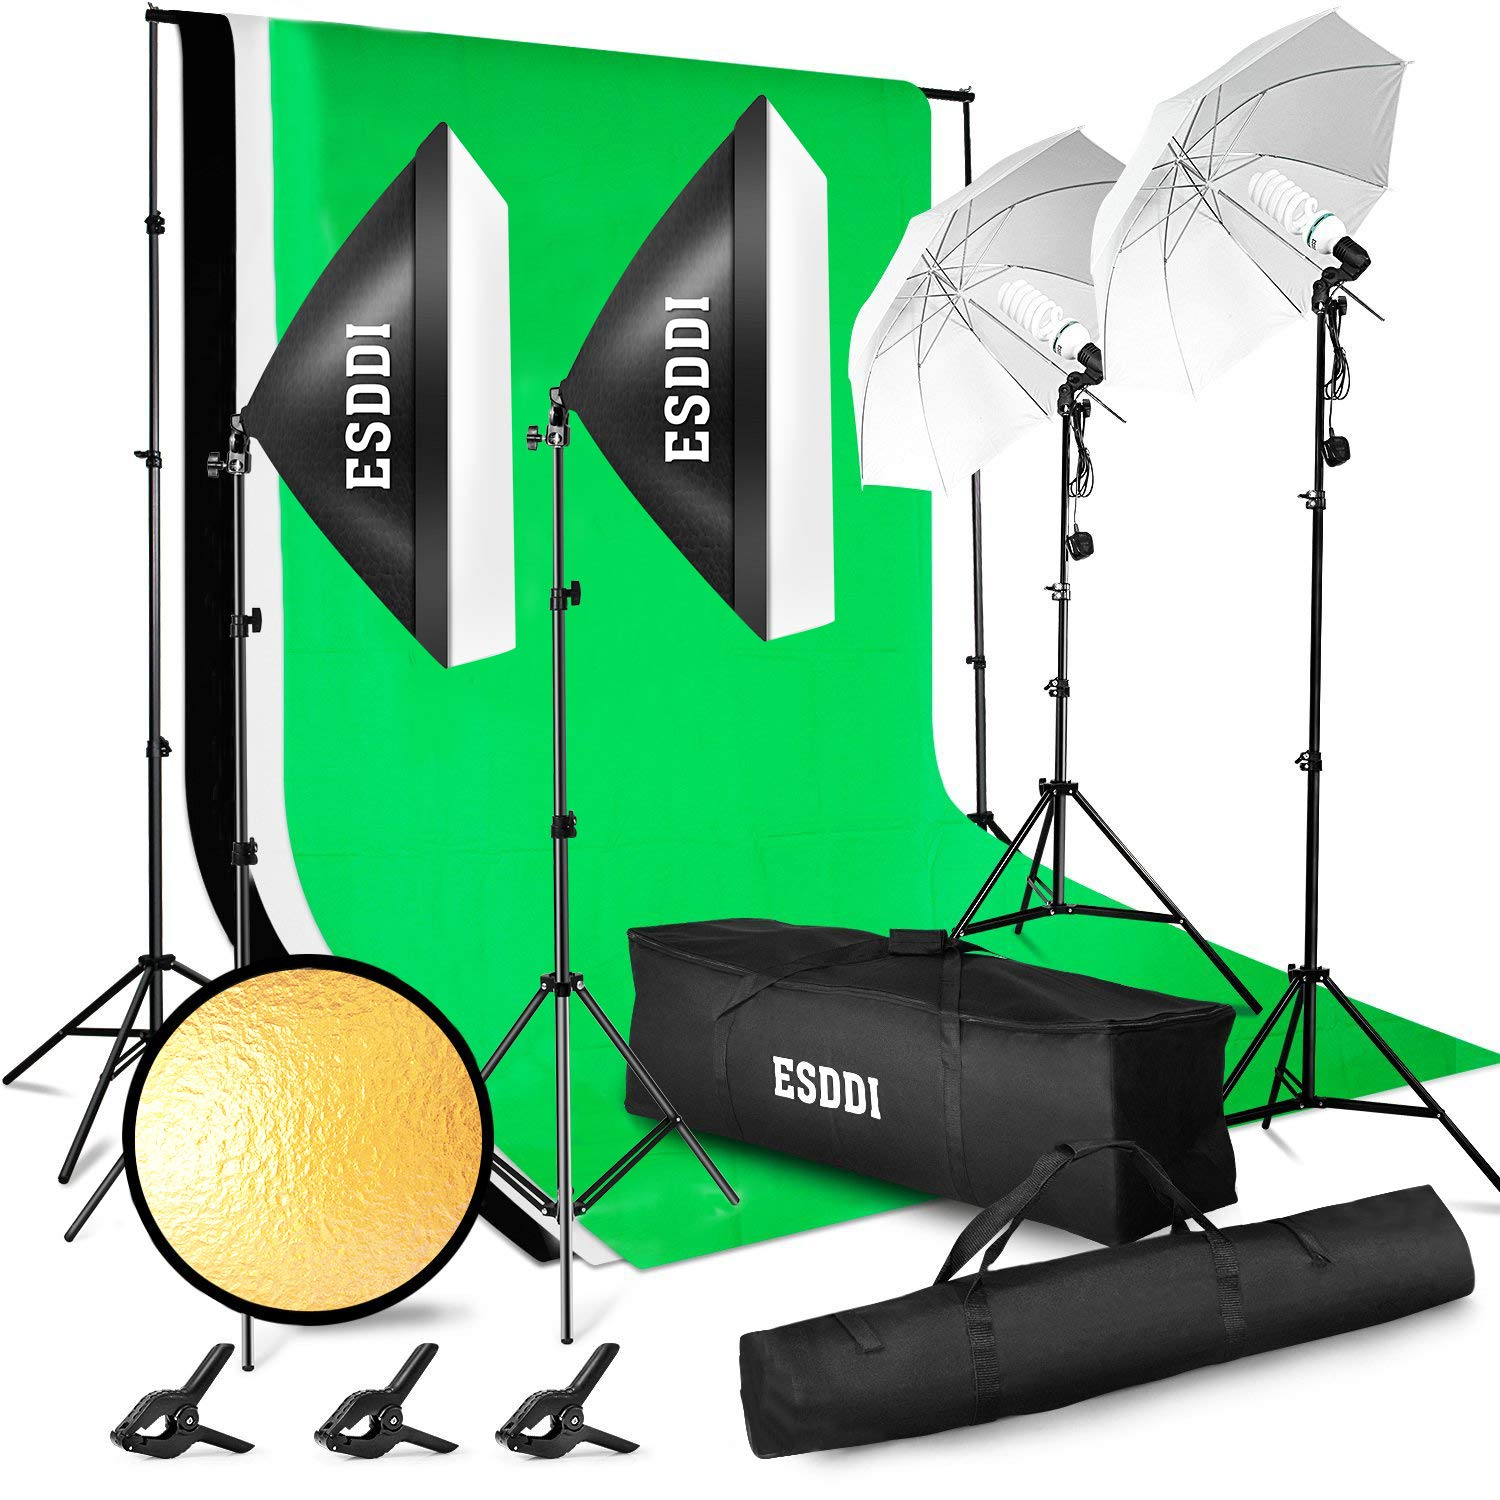 ESDDI Lighting Kit Adjustable Max Size 2.6Mx3M Background Support System 3 Color Backdrop Fabric Photo Studio Softbox Sets Continuous Umbrella Light Stand with Portable Bag by ESDDI